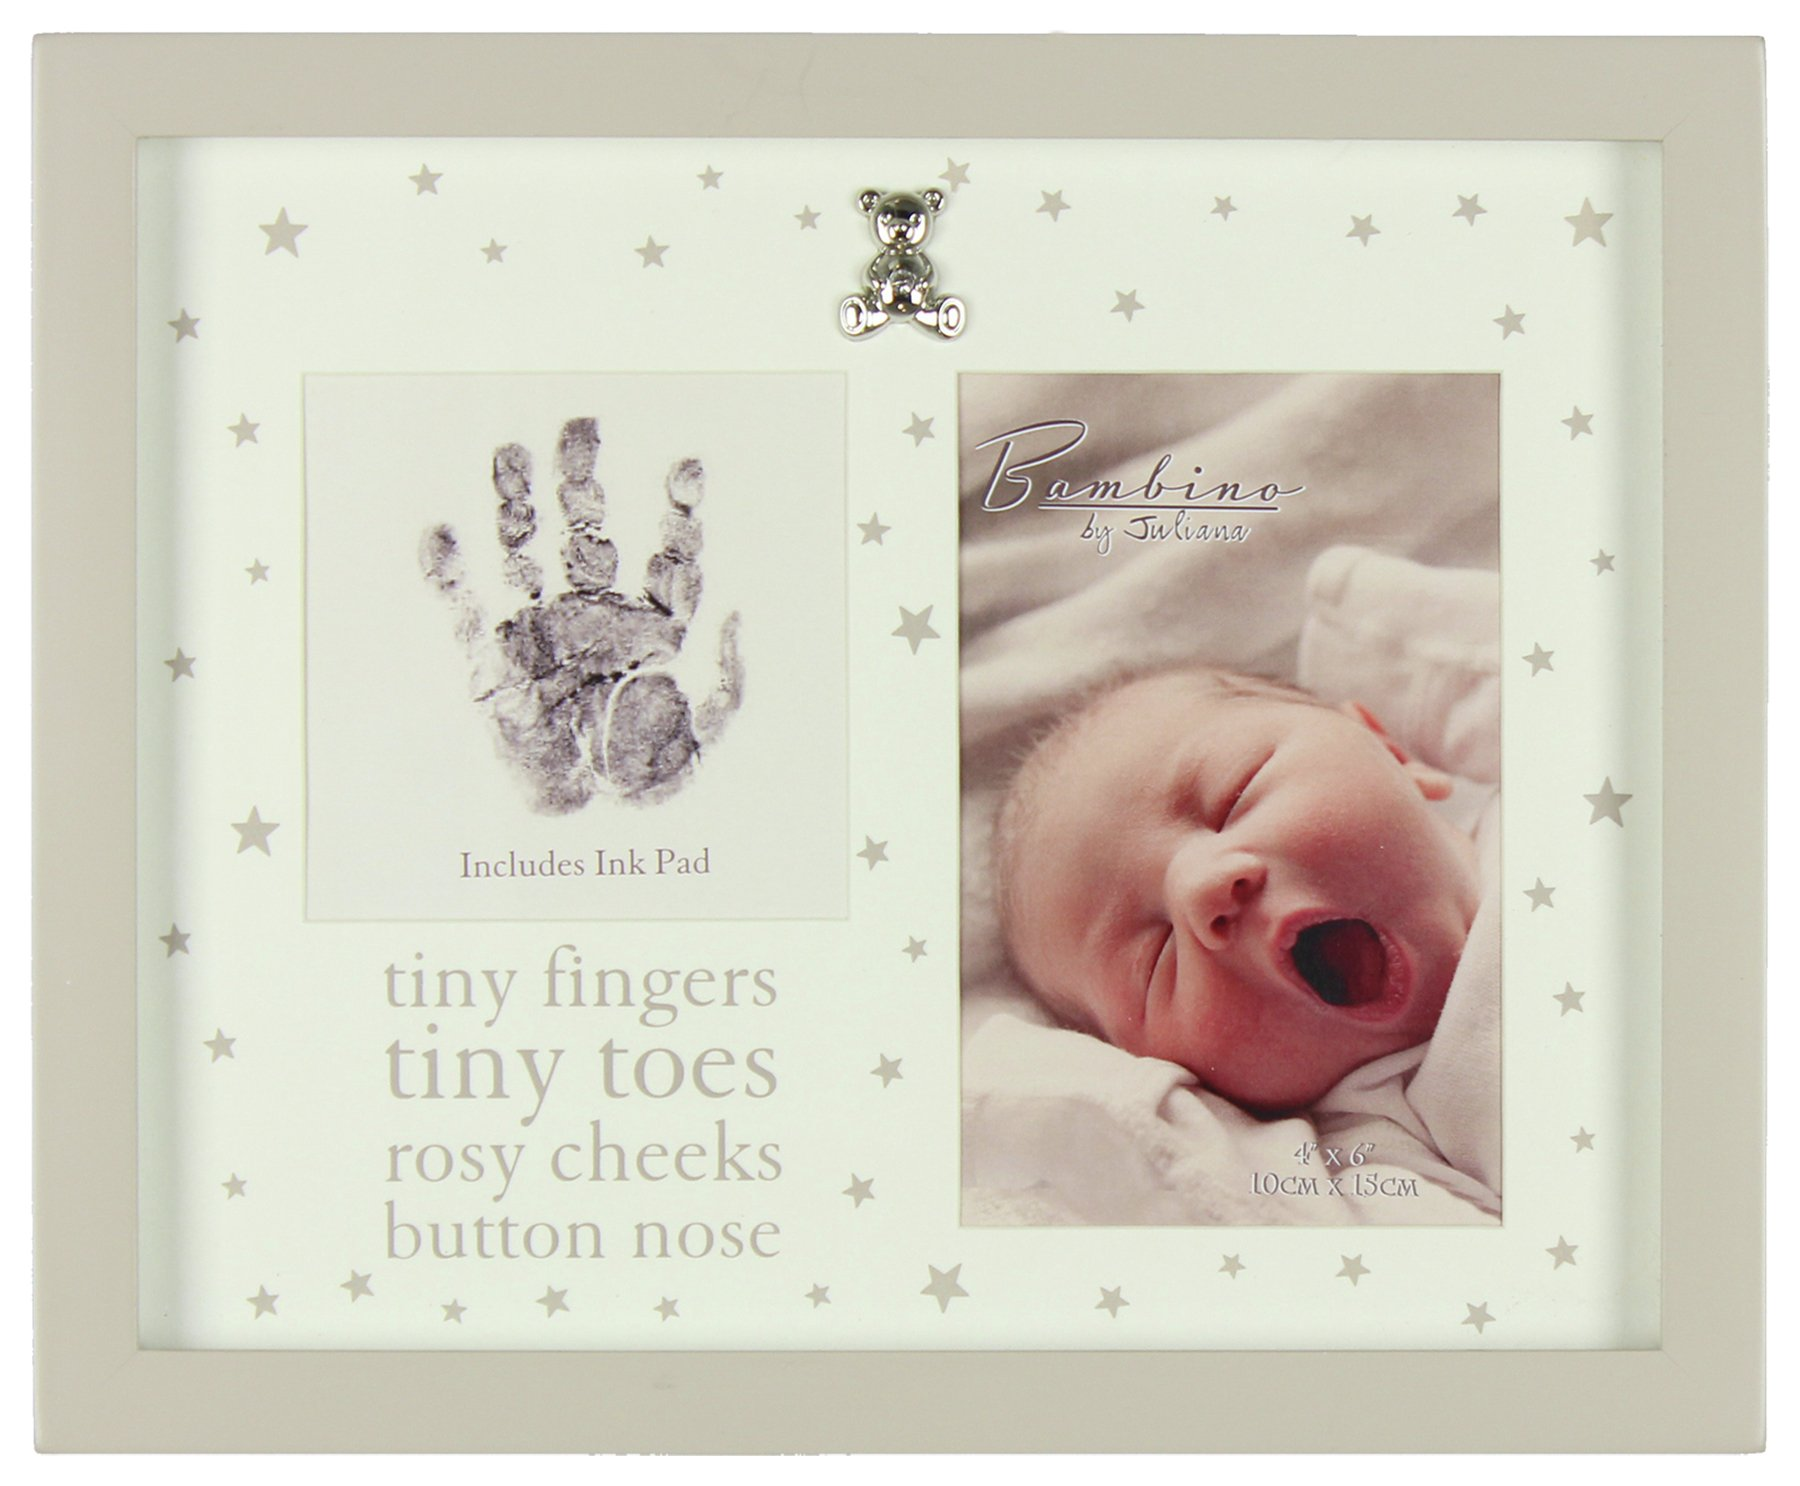 Image of Bambino Hand Print and Photo Frame